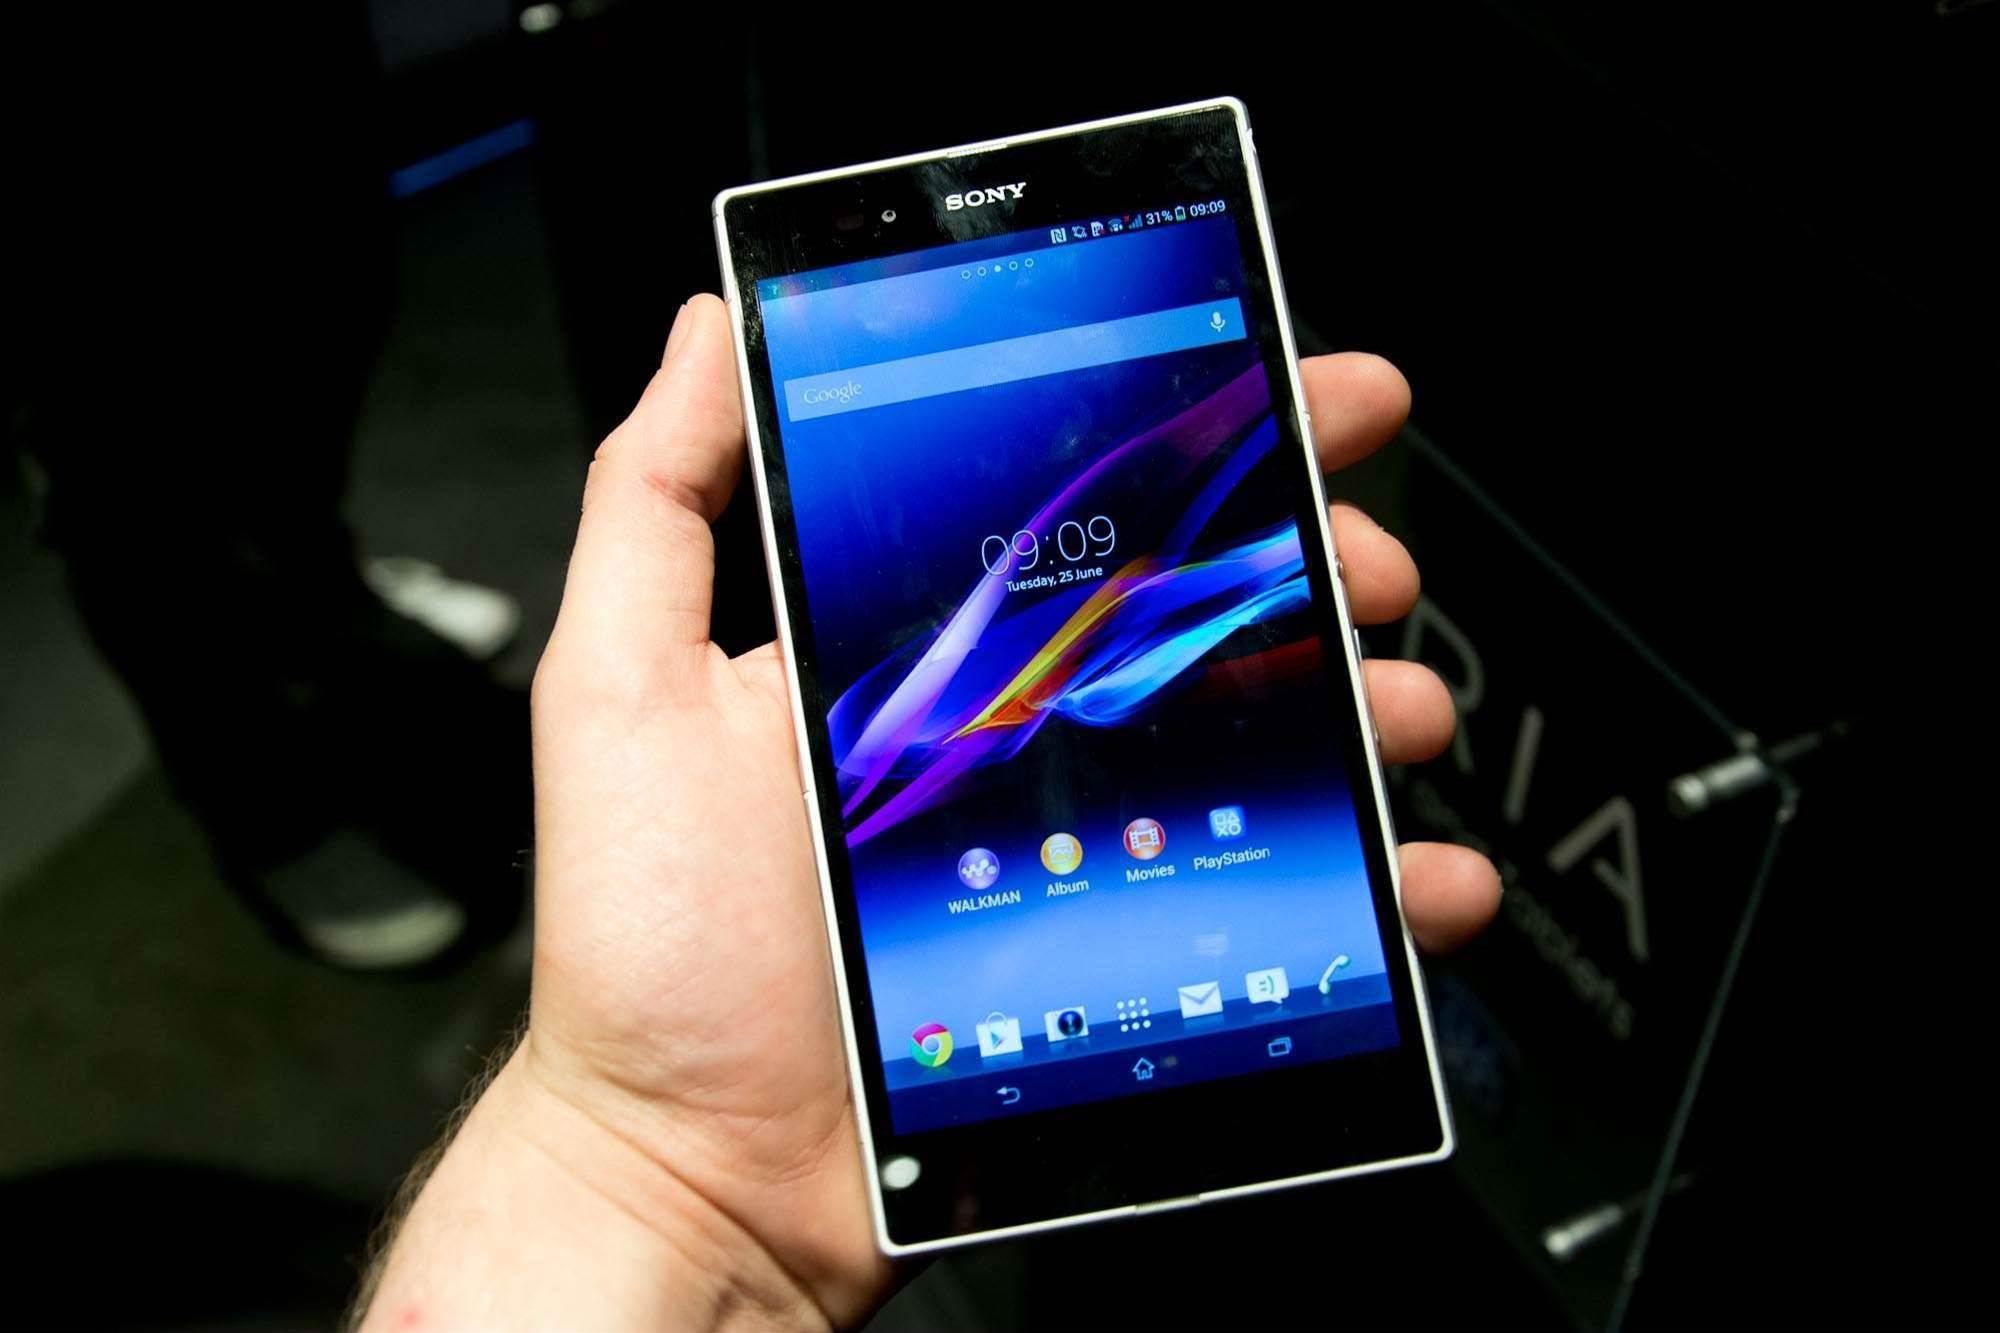 Sony Xperia Z Ultra: a 6.4in waterproof smartphone